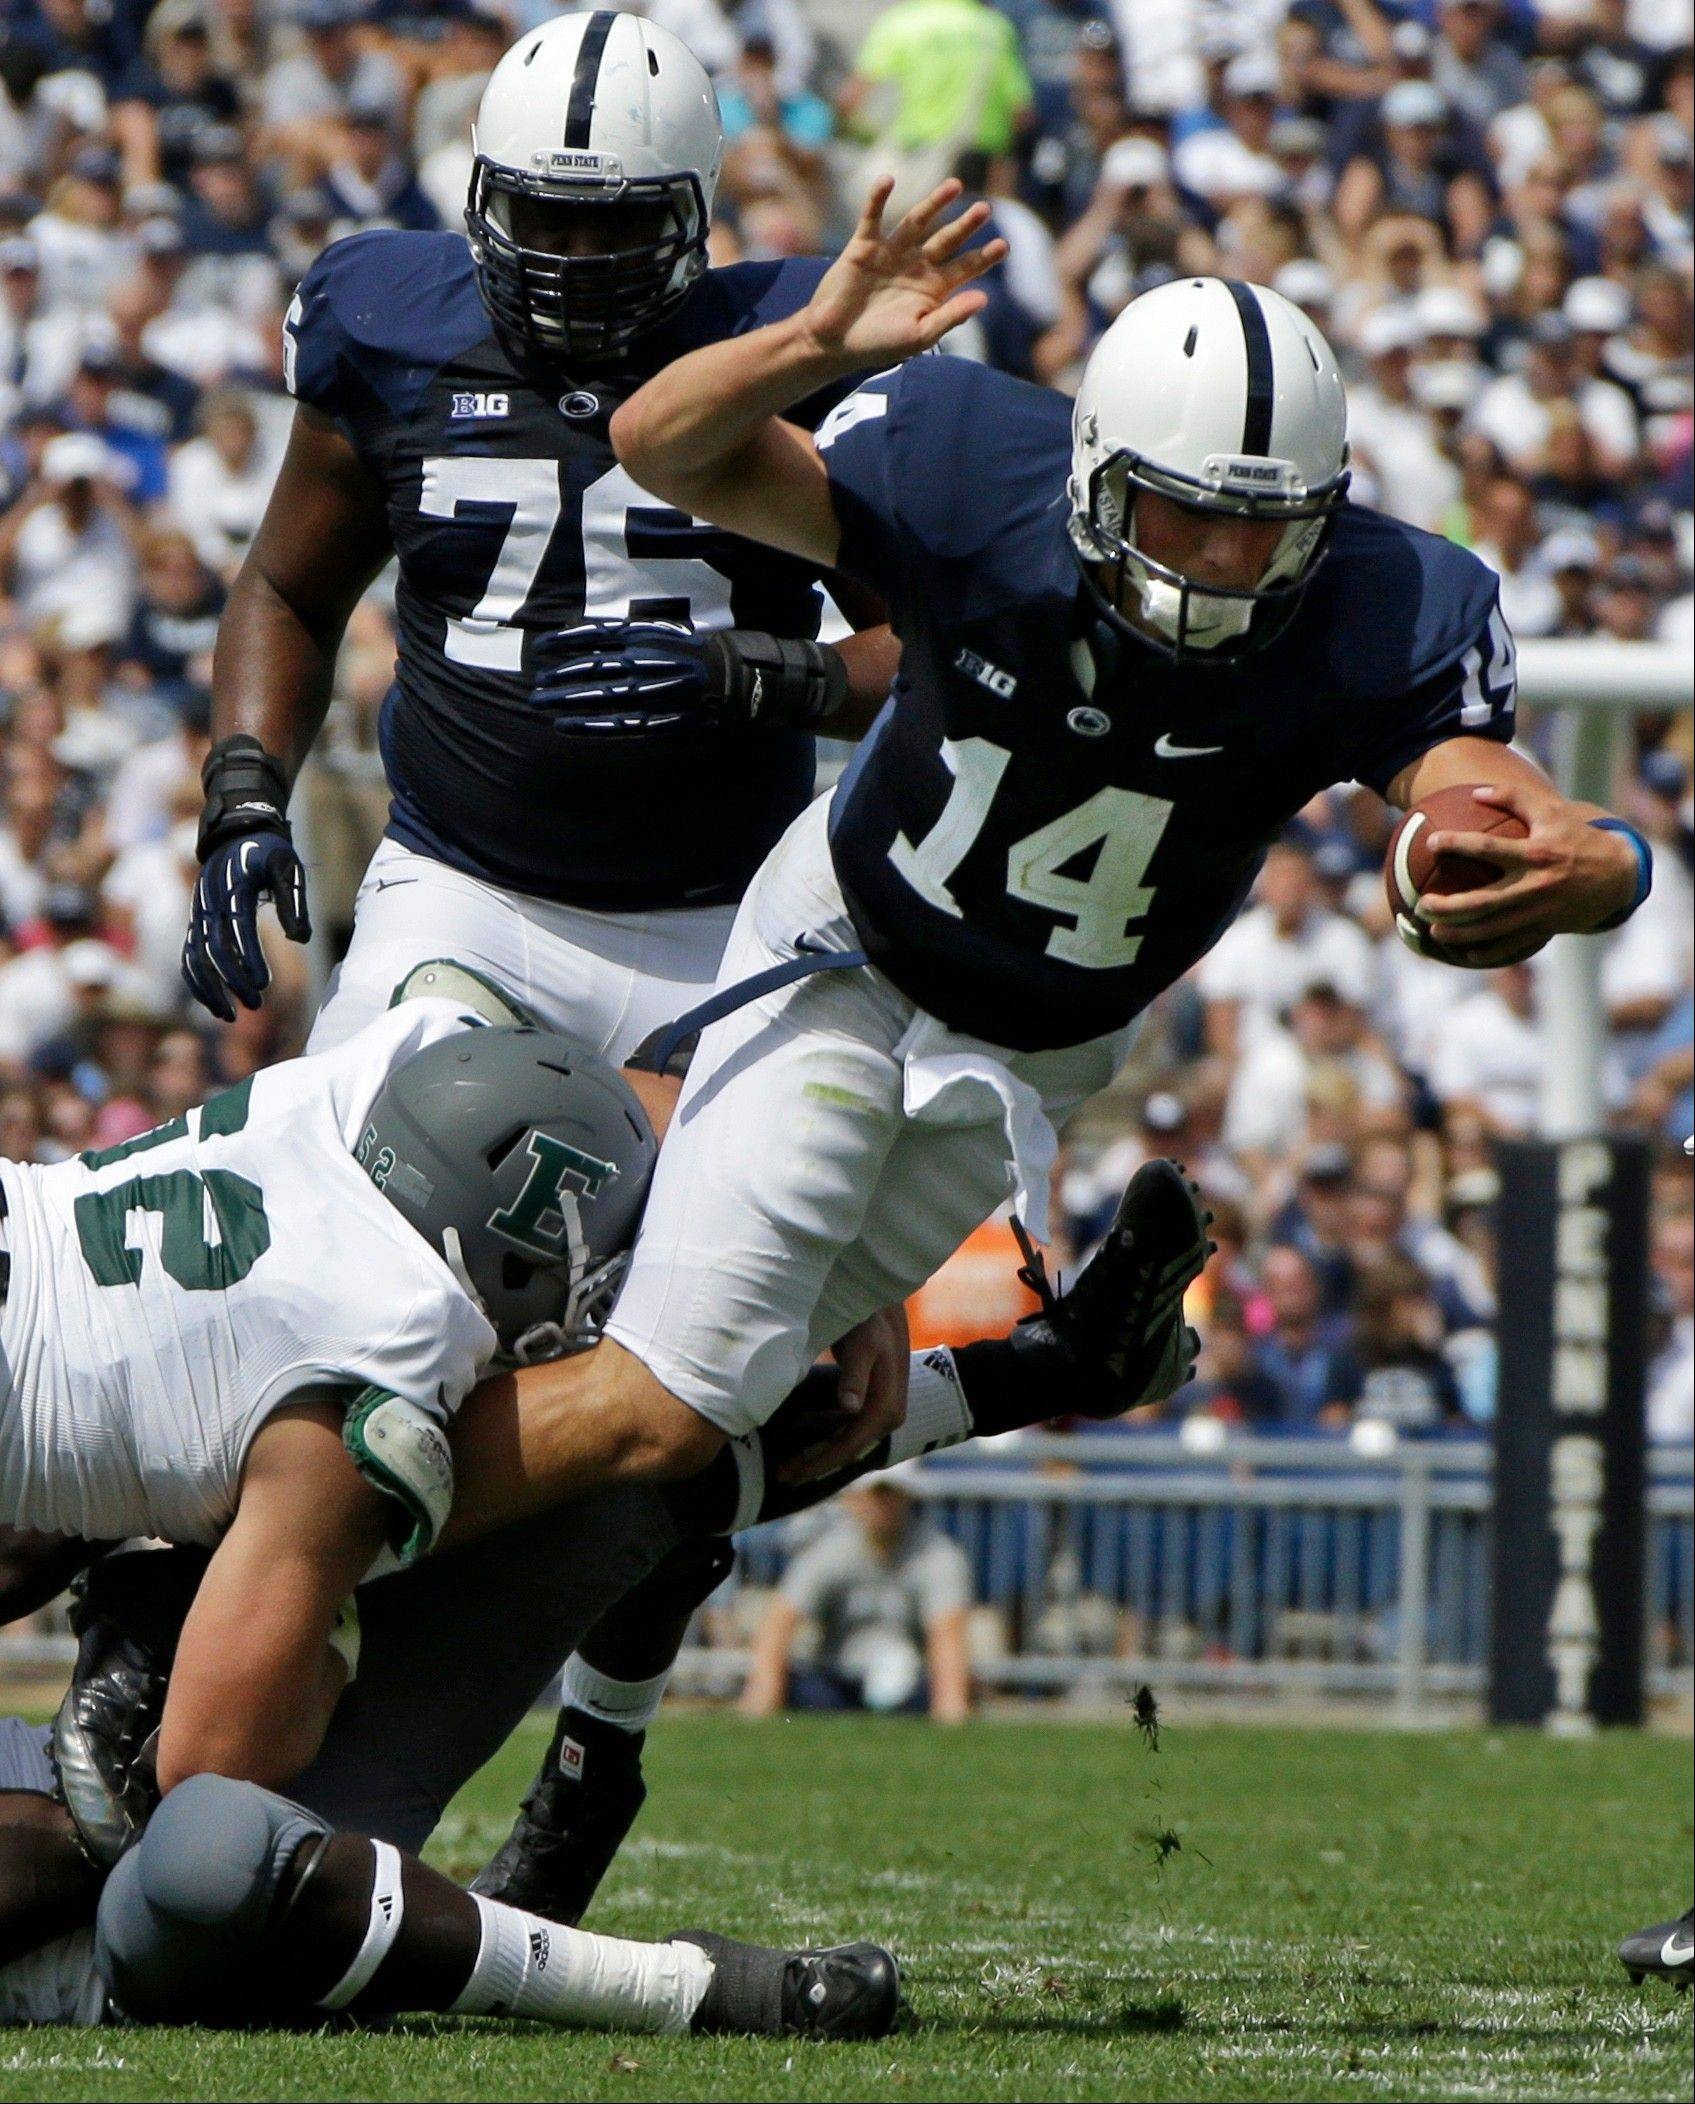 Penn State running back Zach Zwinak dives into the end zone to score on a two-yard run during the first quarter of Saturday's game against Eastern Michigan in State College, Pa.